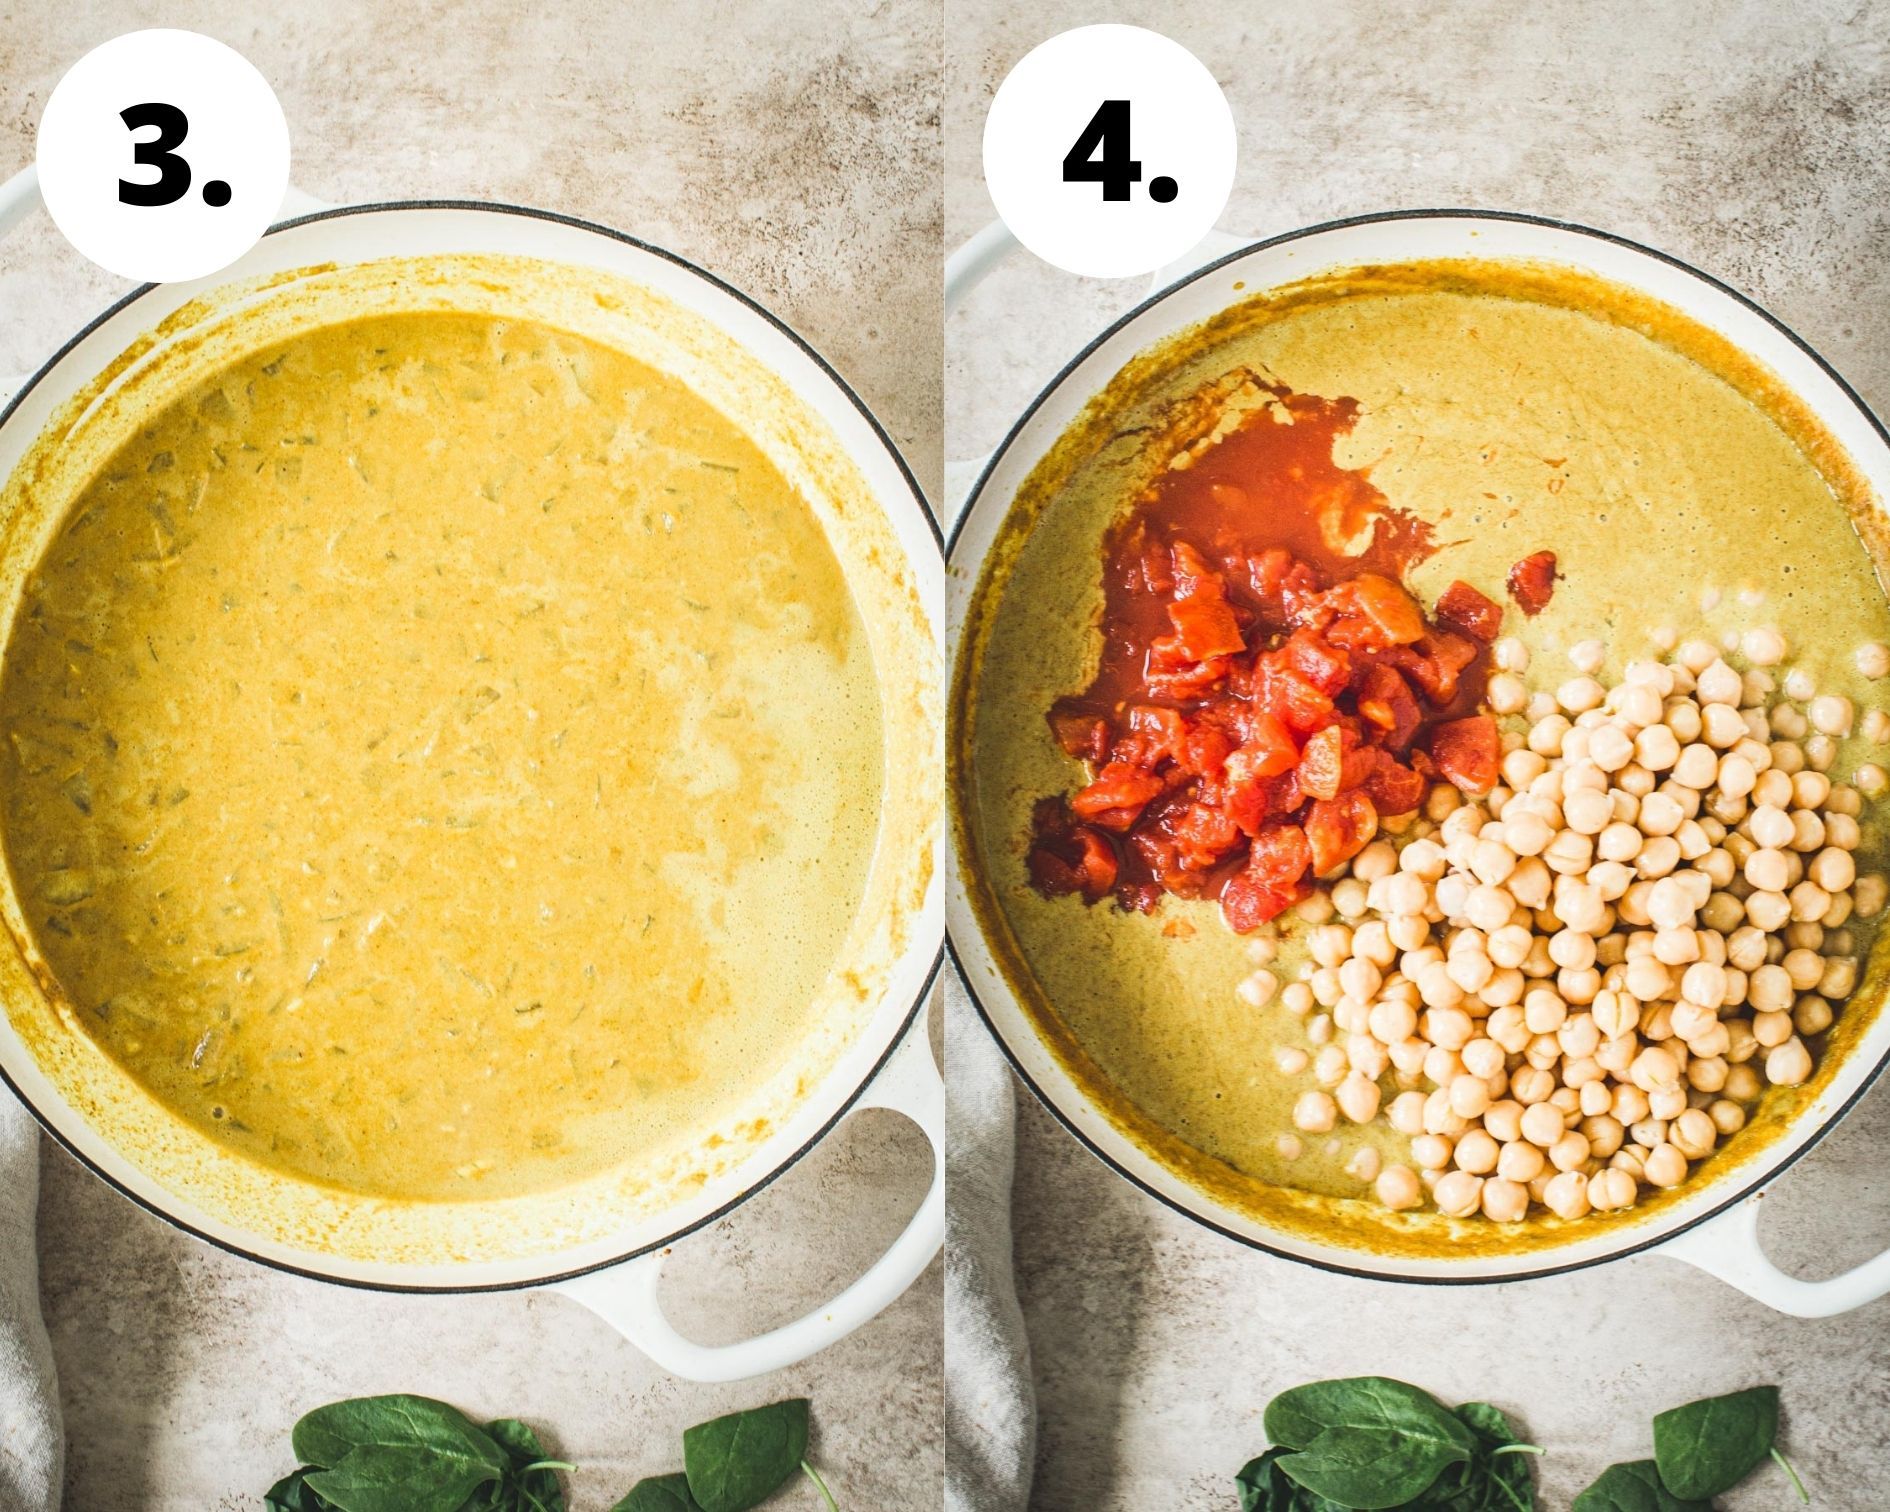 Chickpea spinach curry process steps 3 and 4.